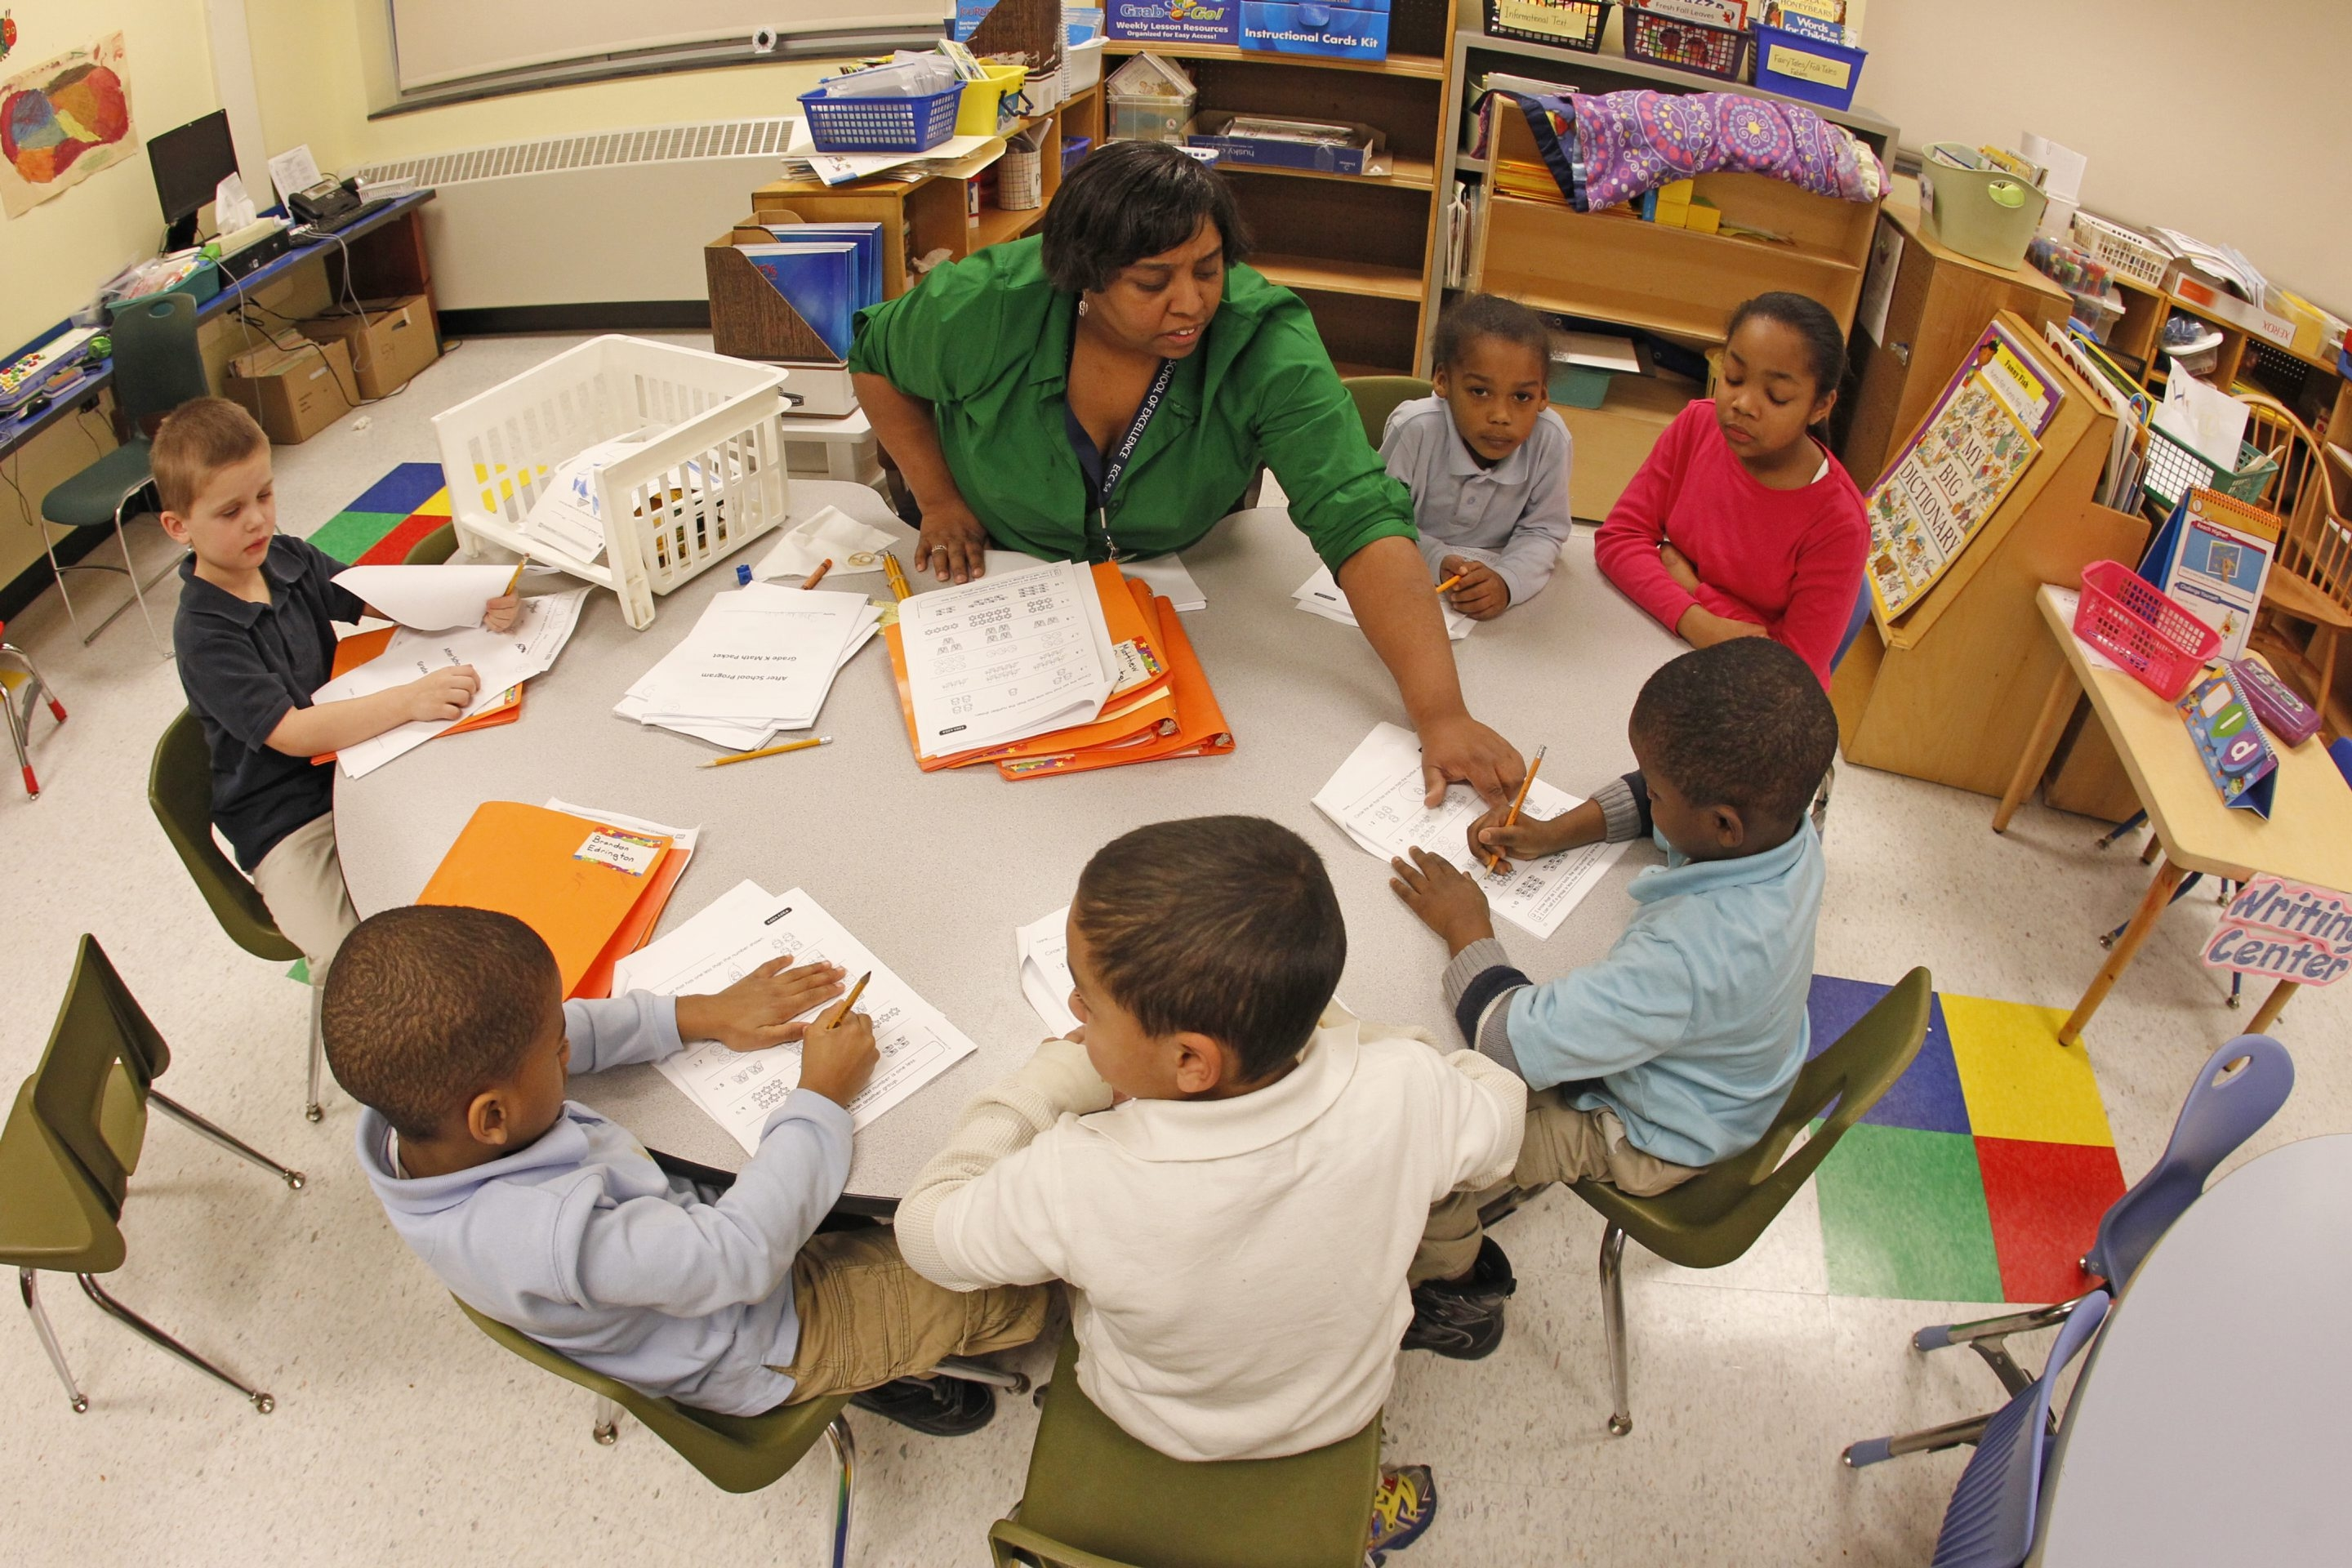 Shawann M. Ealey's students in after-school program in School 54 eagerly work to improve the skills they need to be successful during the class day, but Buffalo School District has been slow to make such programs the norm.